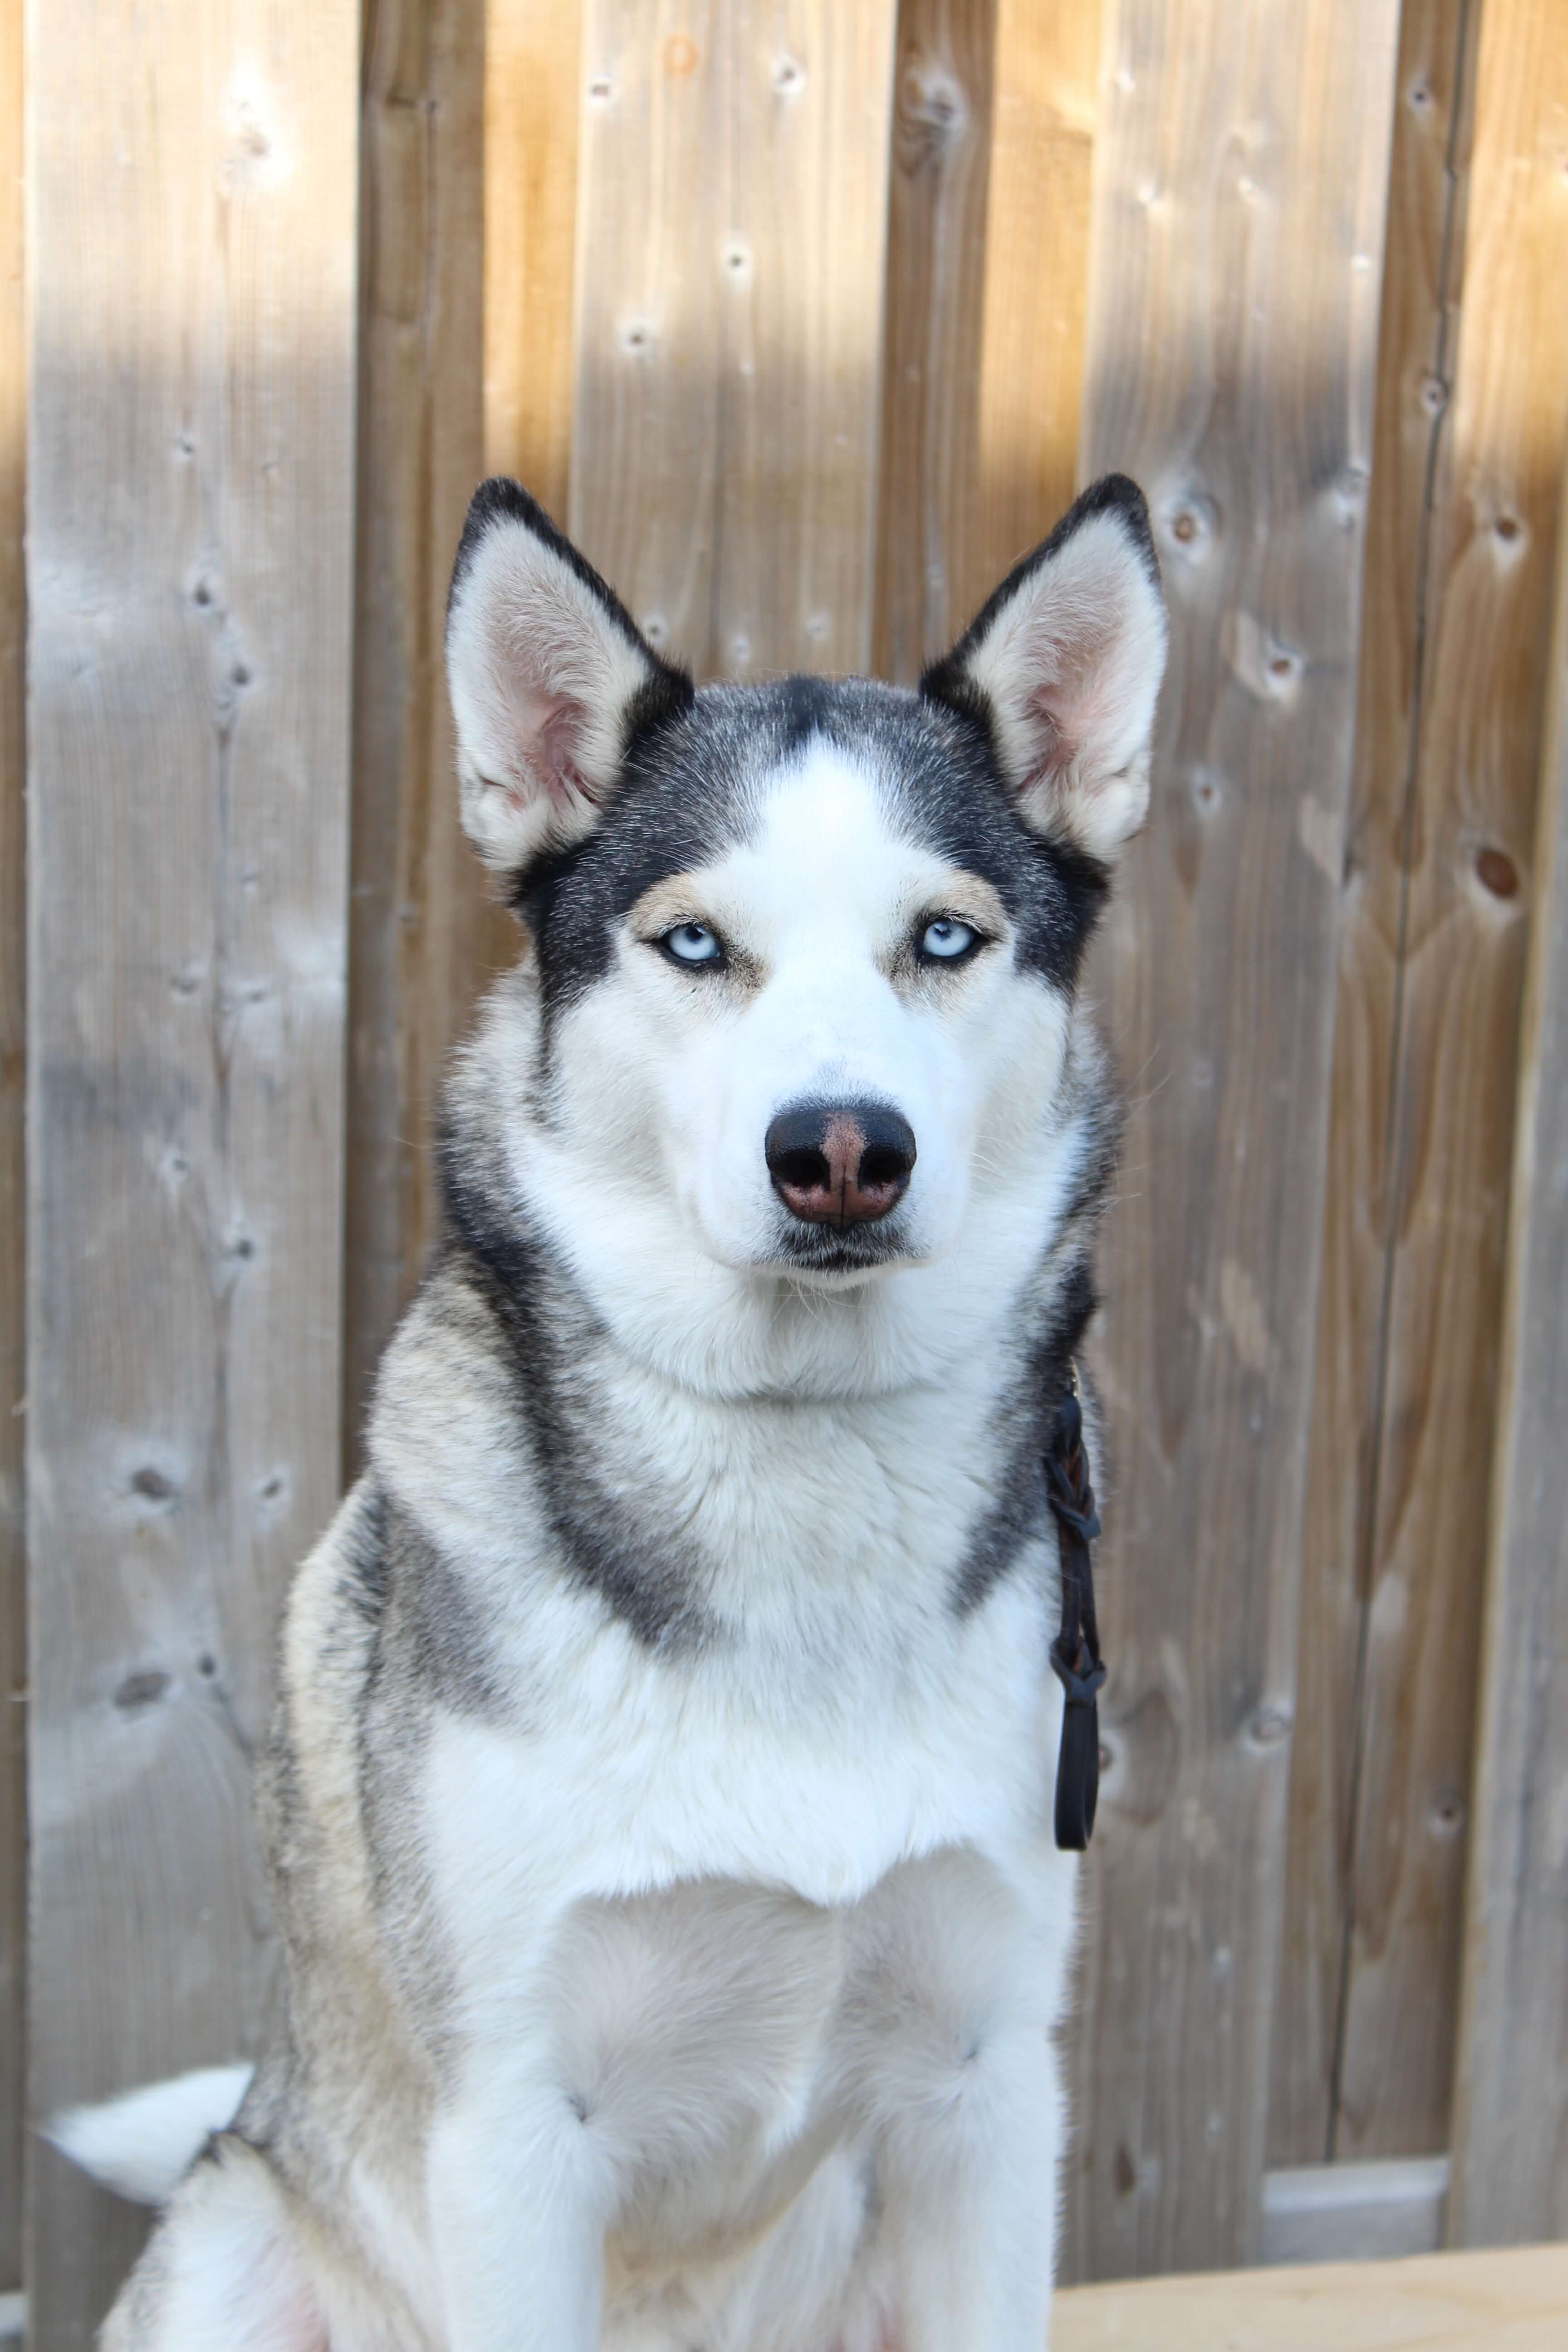 a candid photo of a typical looking siberian husky with black and white fur with an arctic-like background.